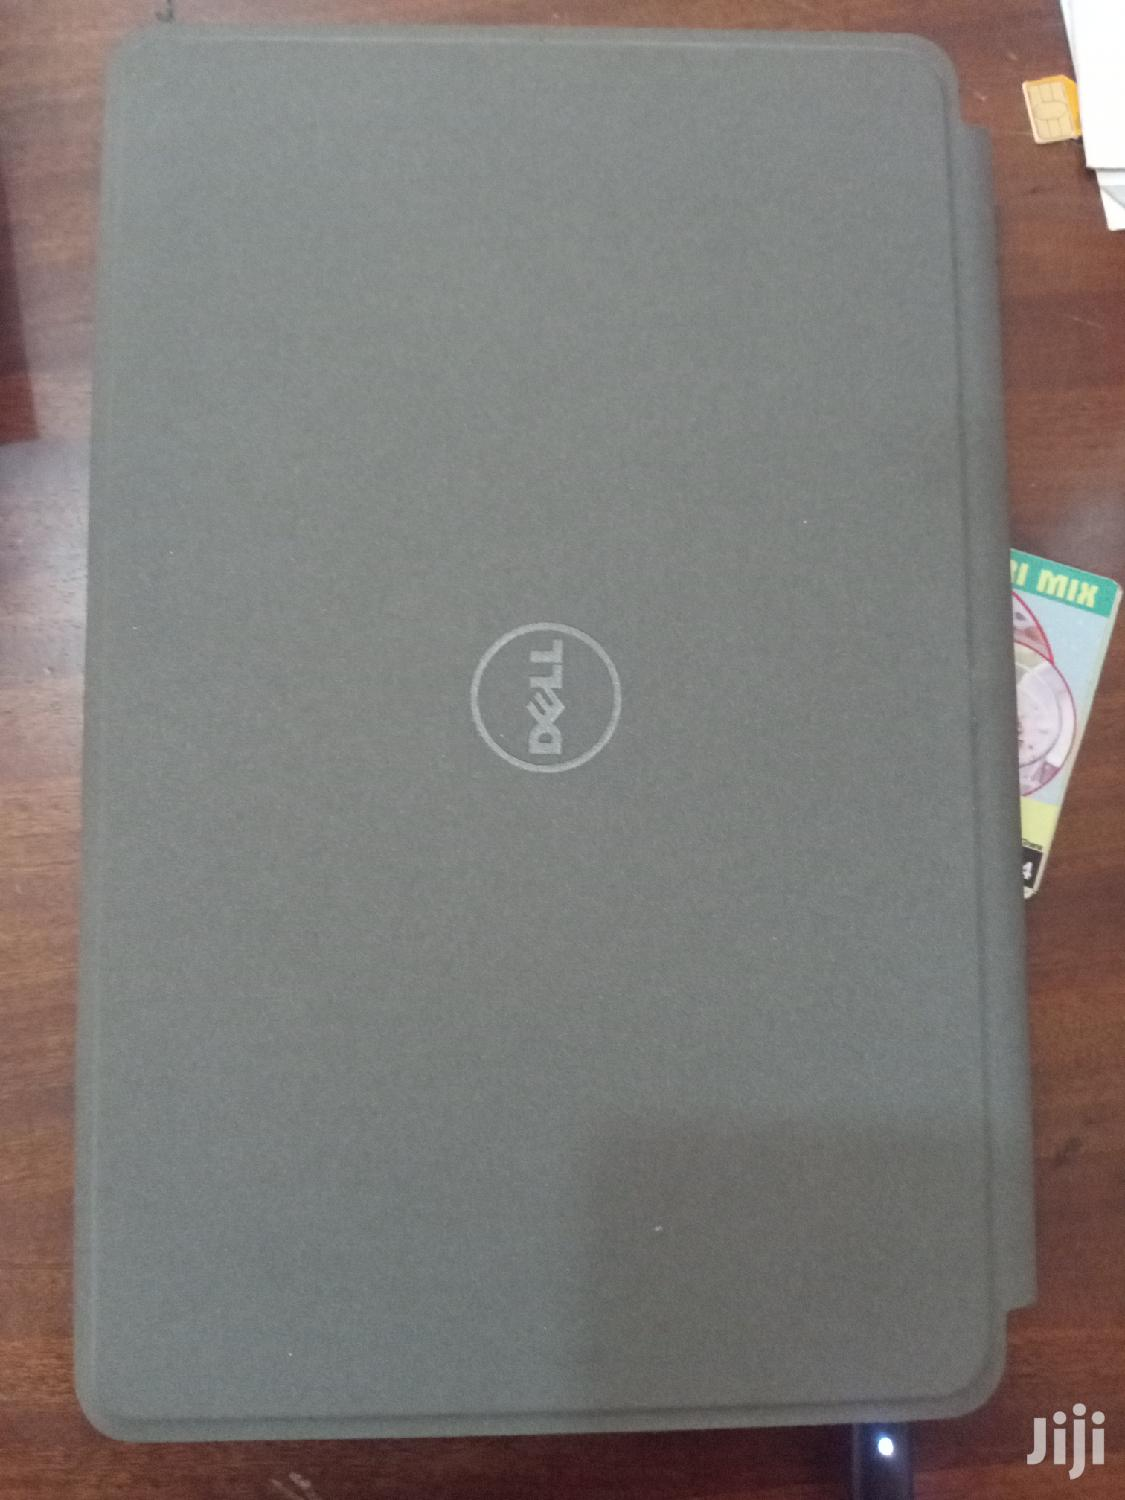 Laptop Dell 8GB Intel Core i5 SSD 256GB | Laptops & Computers for sale in Tamale Municipal, Northern Region, Ghana